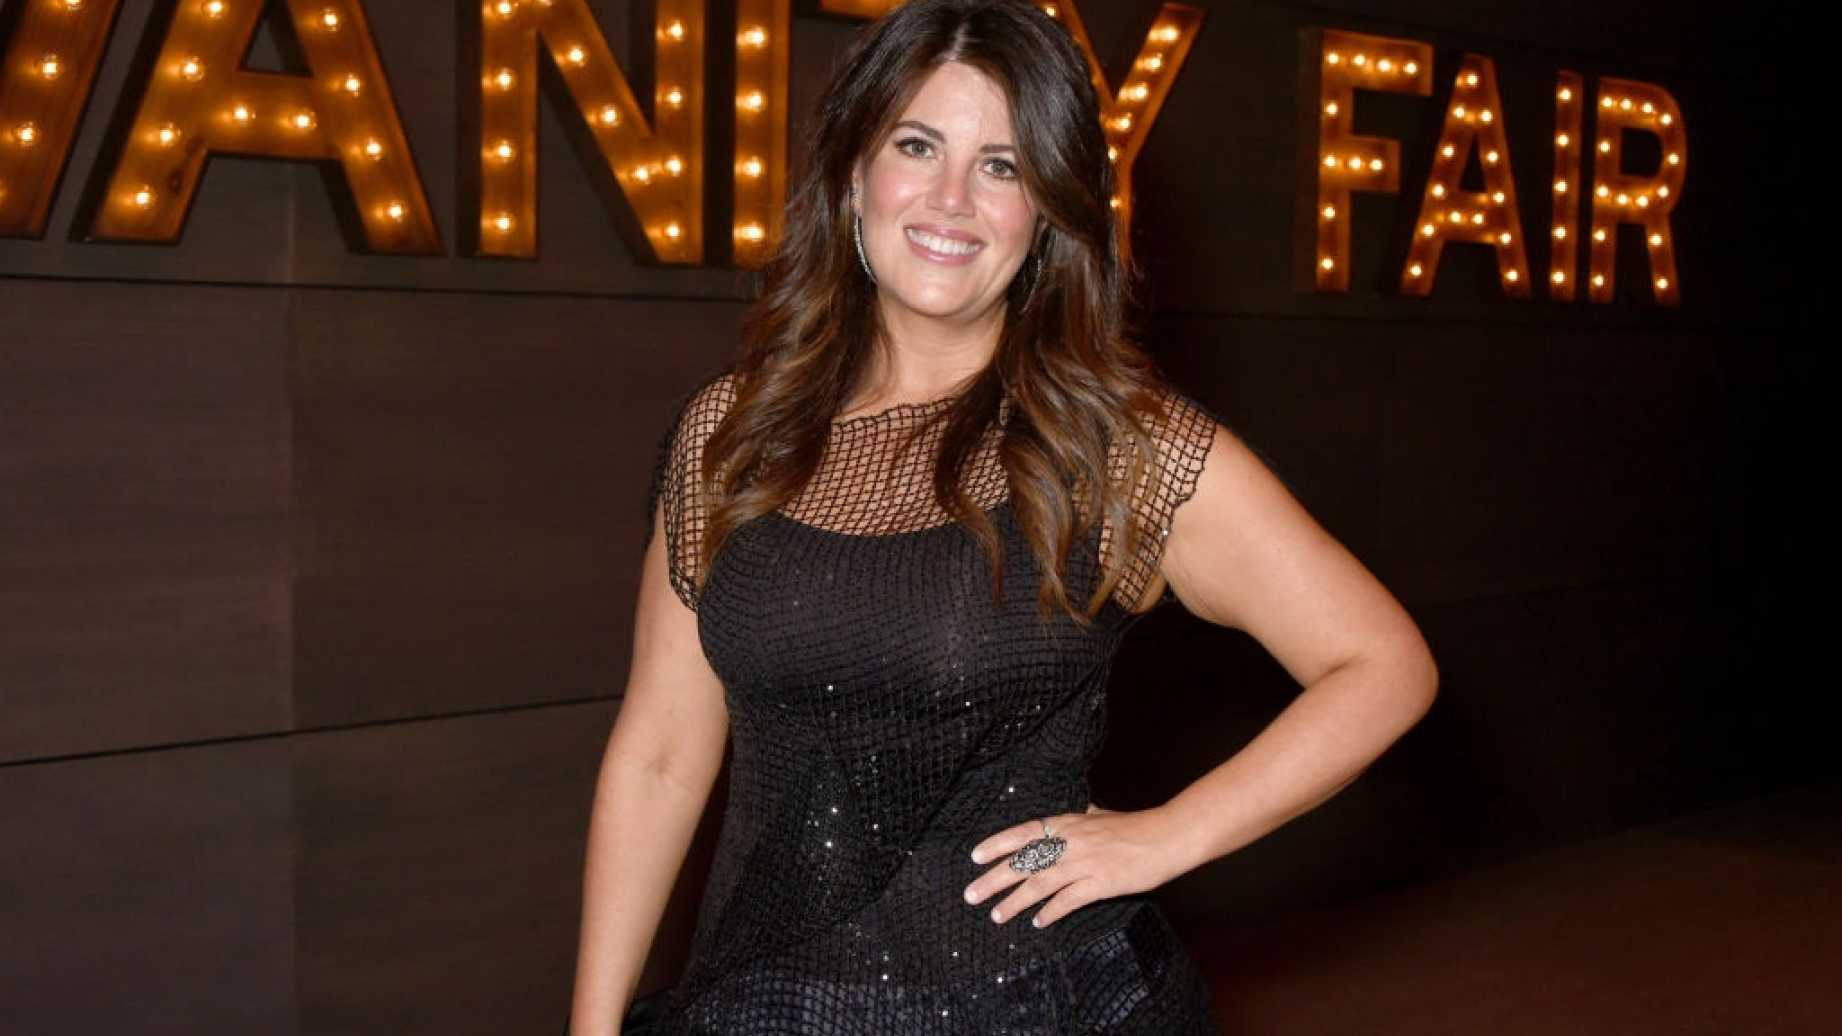 Monica Lewinsky Joins The #MeToo Movement